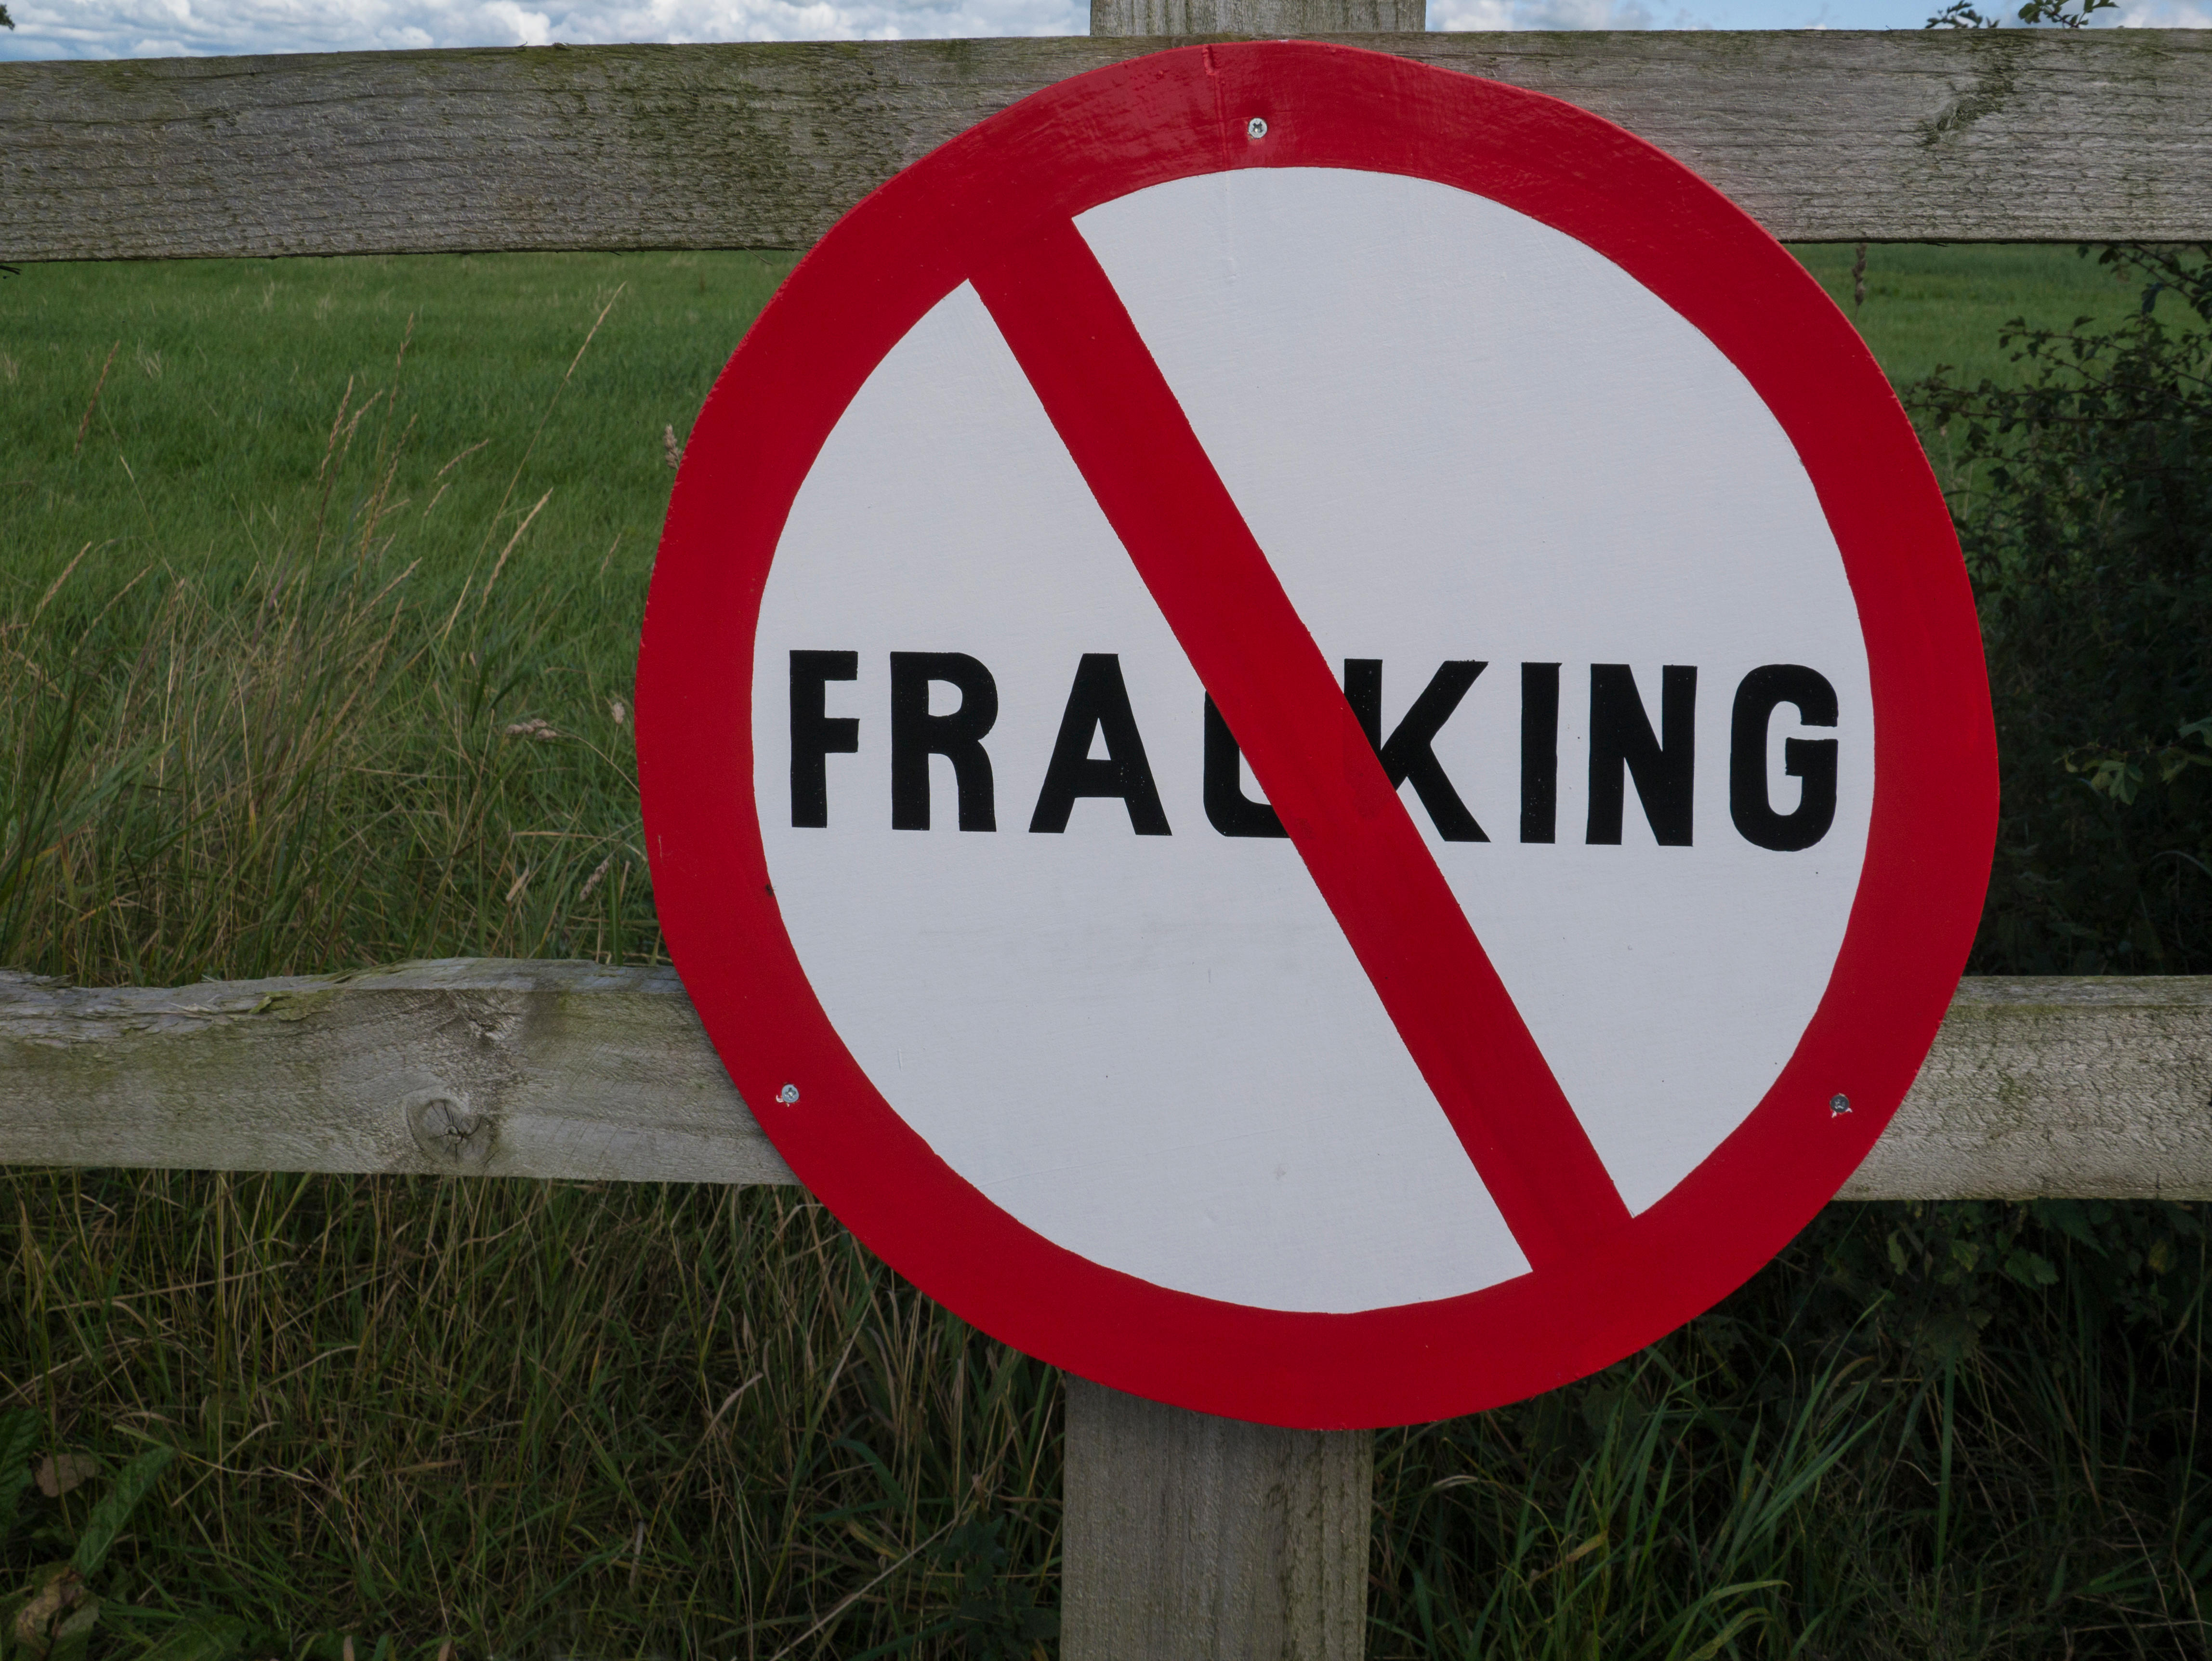 Country Life Today: Government 'release fracking report with 37 of 48 pages entirely blacked out by censor's pen'